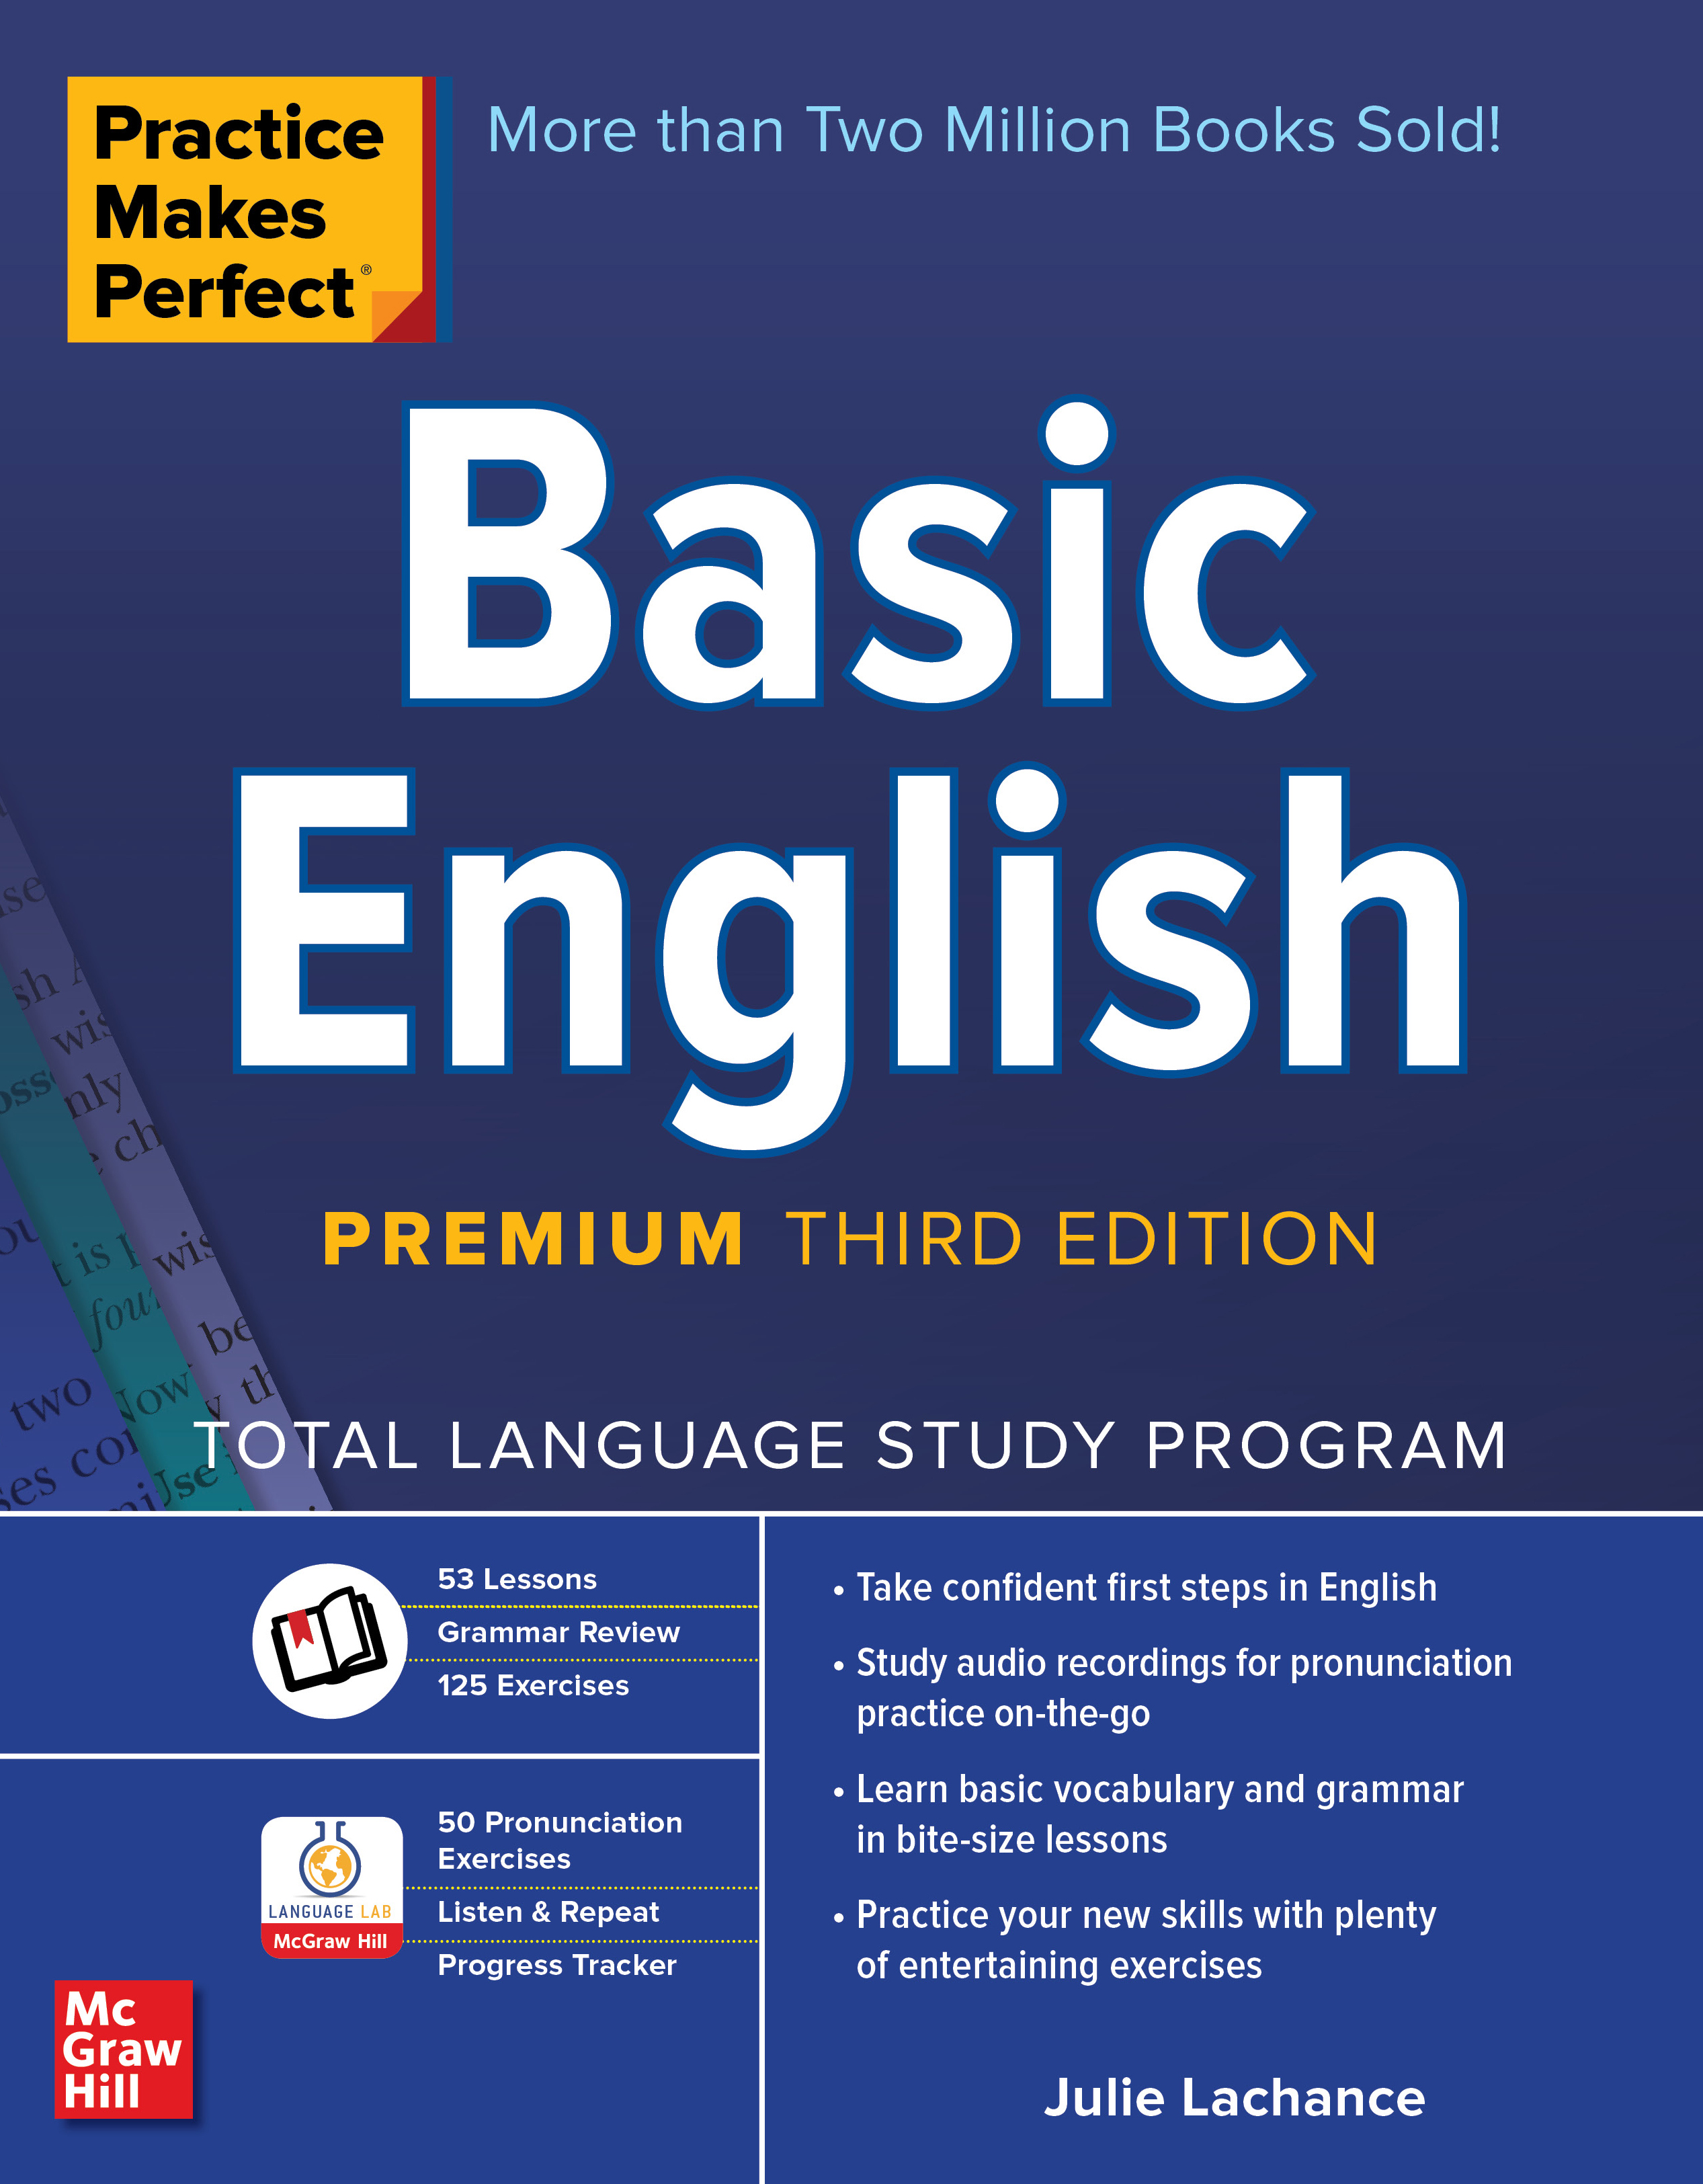 Download Ebook Practice Makes Perfect: Basic English, Premium Third Edition (3rd ed.) by Julie Lachance Pdf